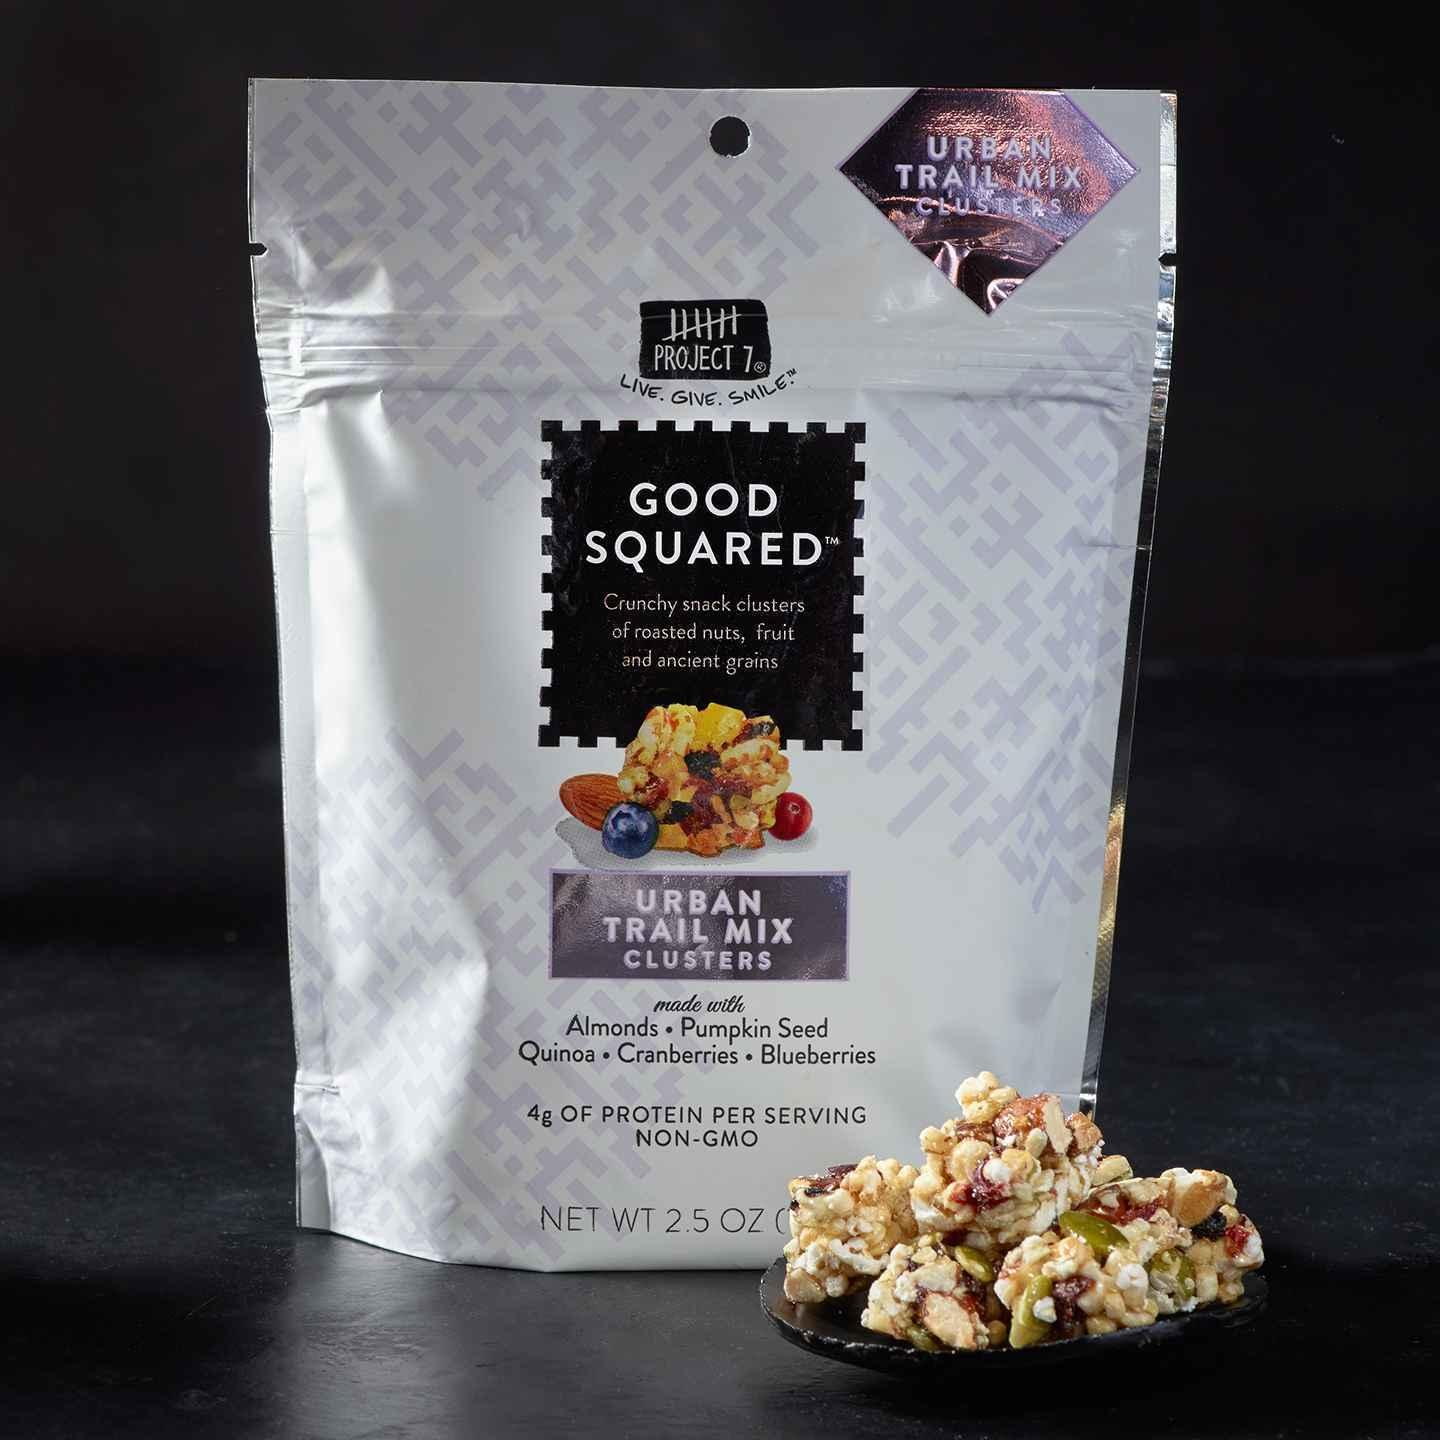 Starbucks Good Squared Urban Trail Mix Nutrition Facts